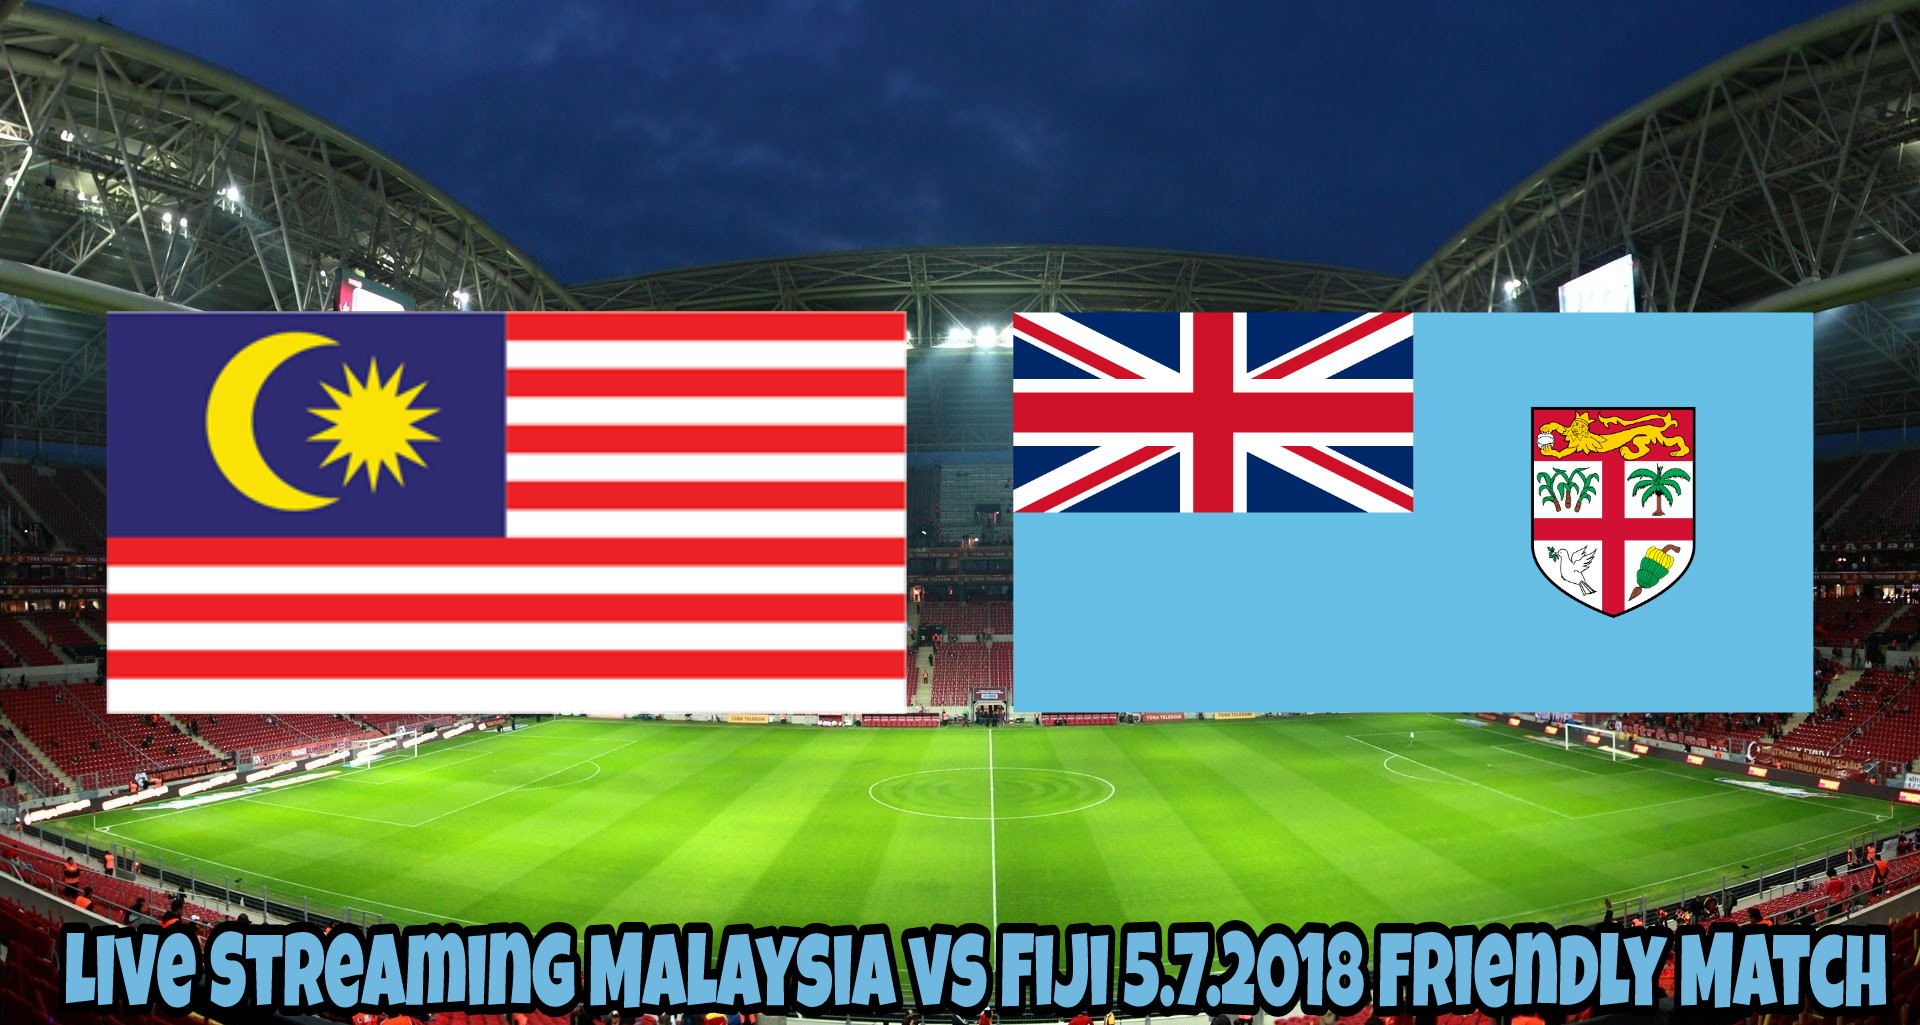 Live Streaming Malaysia vs Fiji 5.7.2018 Friendly Match